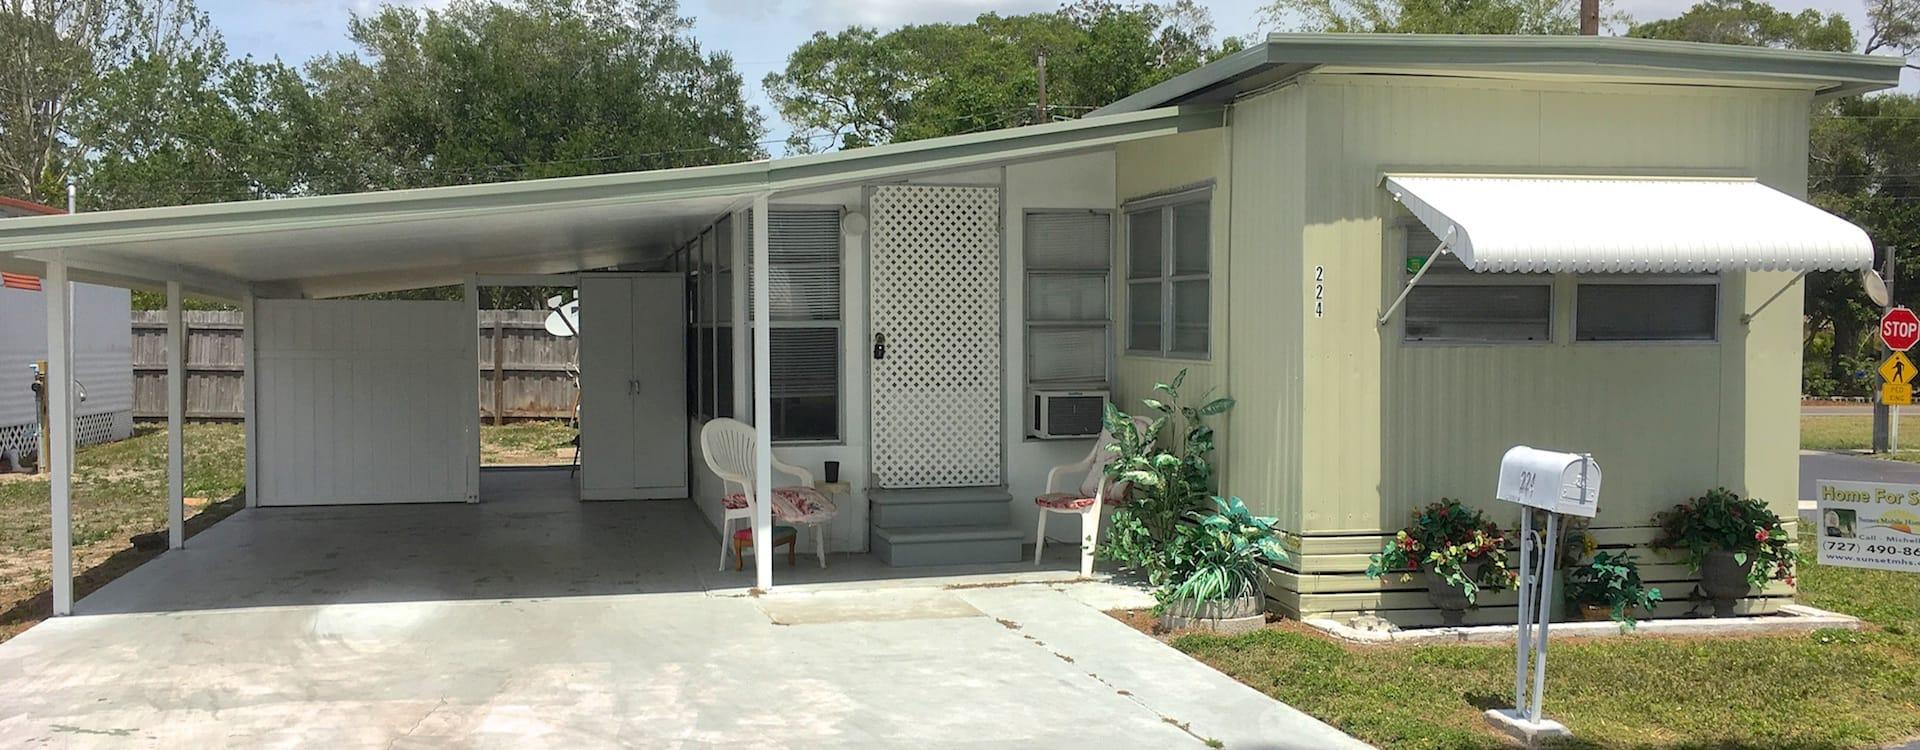 Mobile Home For Sale Saint Petersburg Fl Patio Village 224